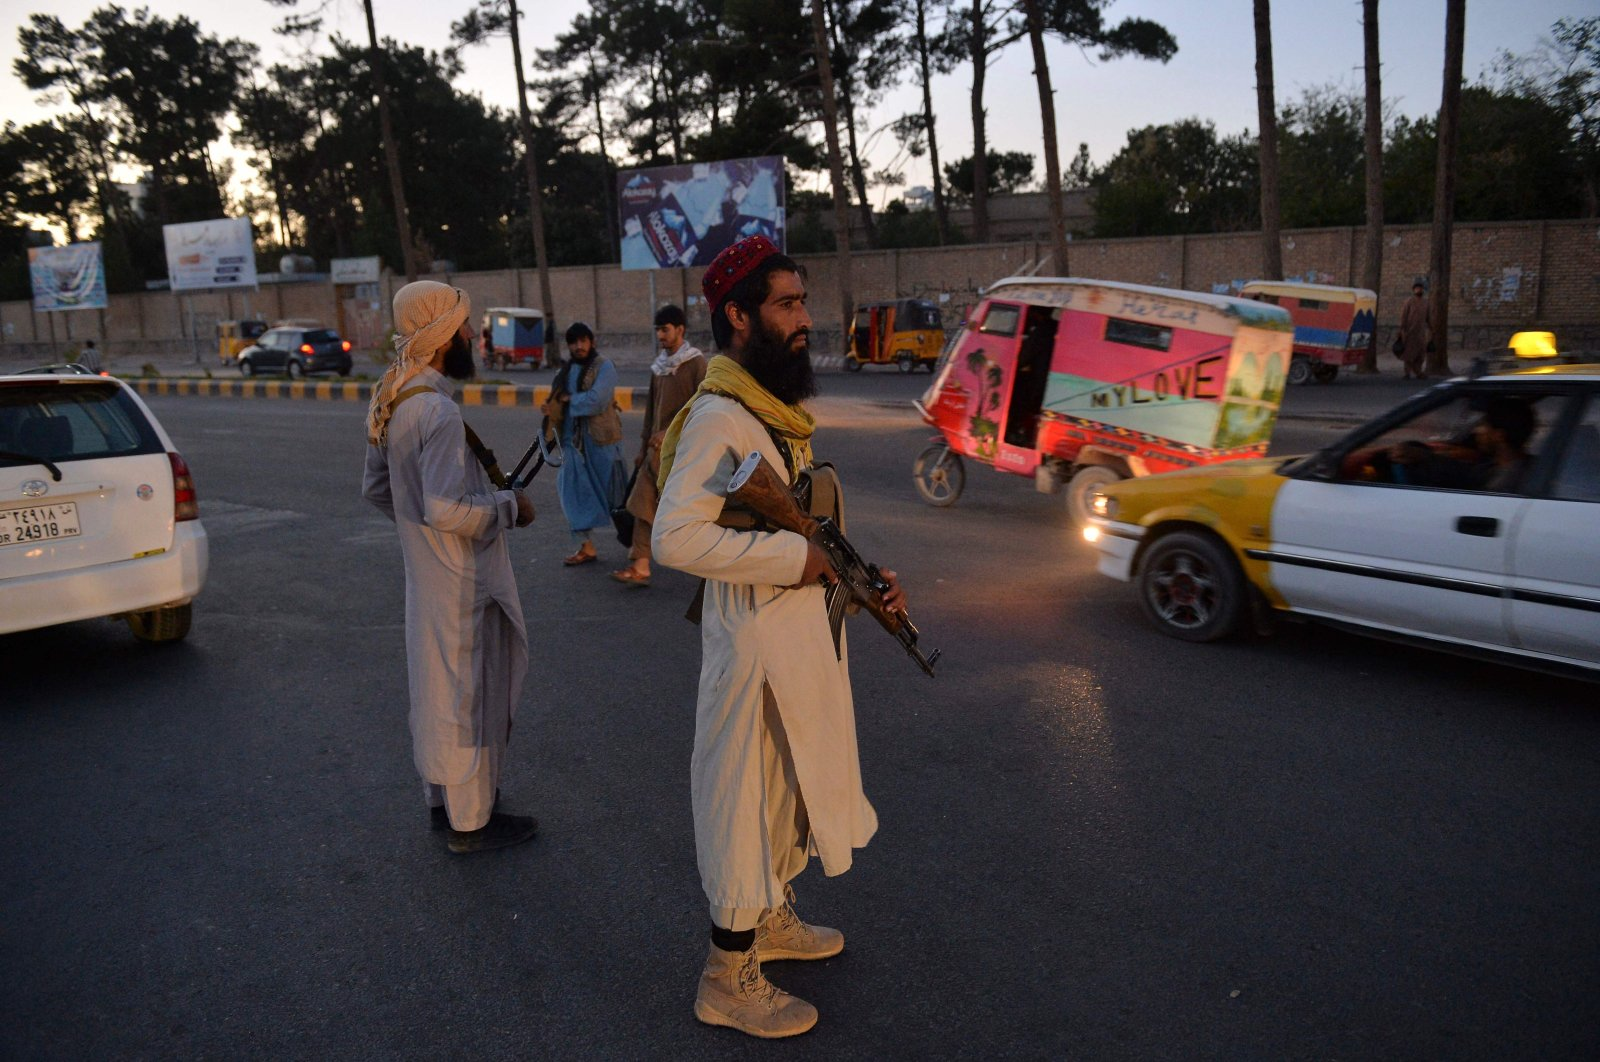 Taliban fighters stand guard along a road in Herat, Afghanistan, Sept. 21, 2021. (Photo by Hoshang Hashimi / AFP)